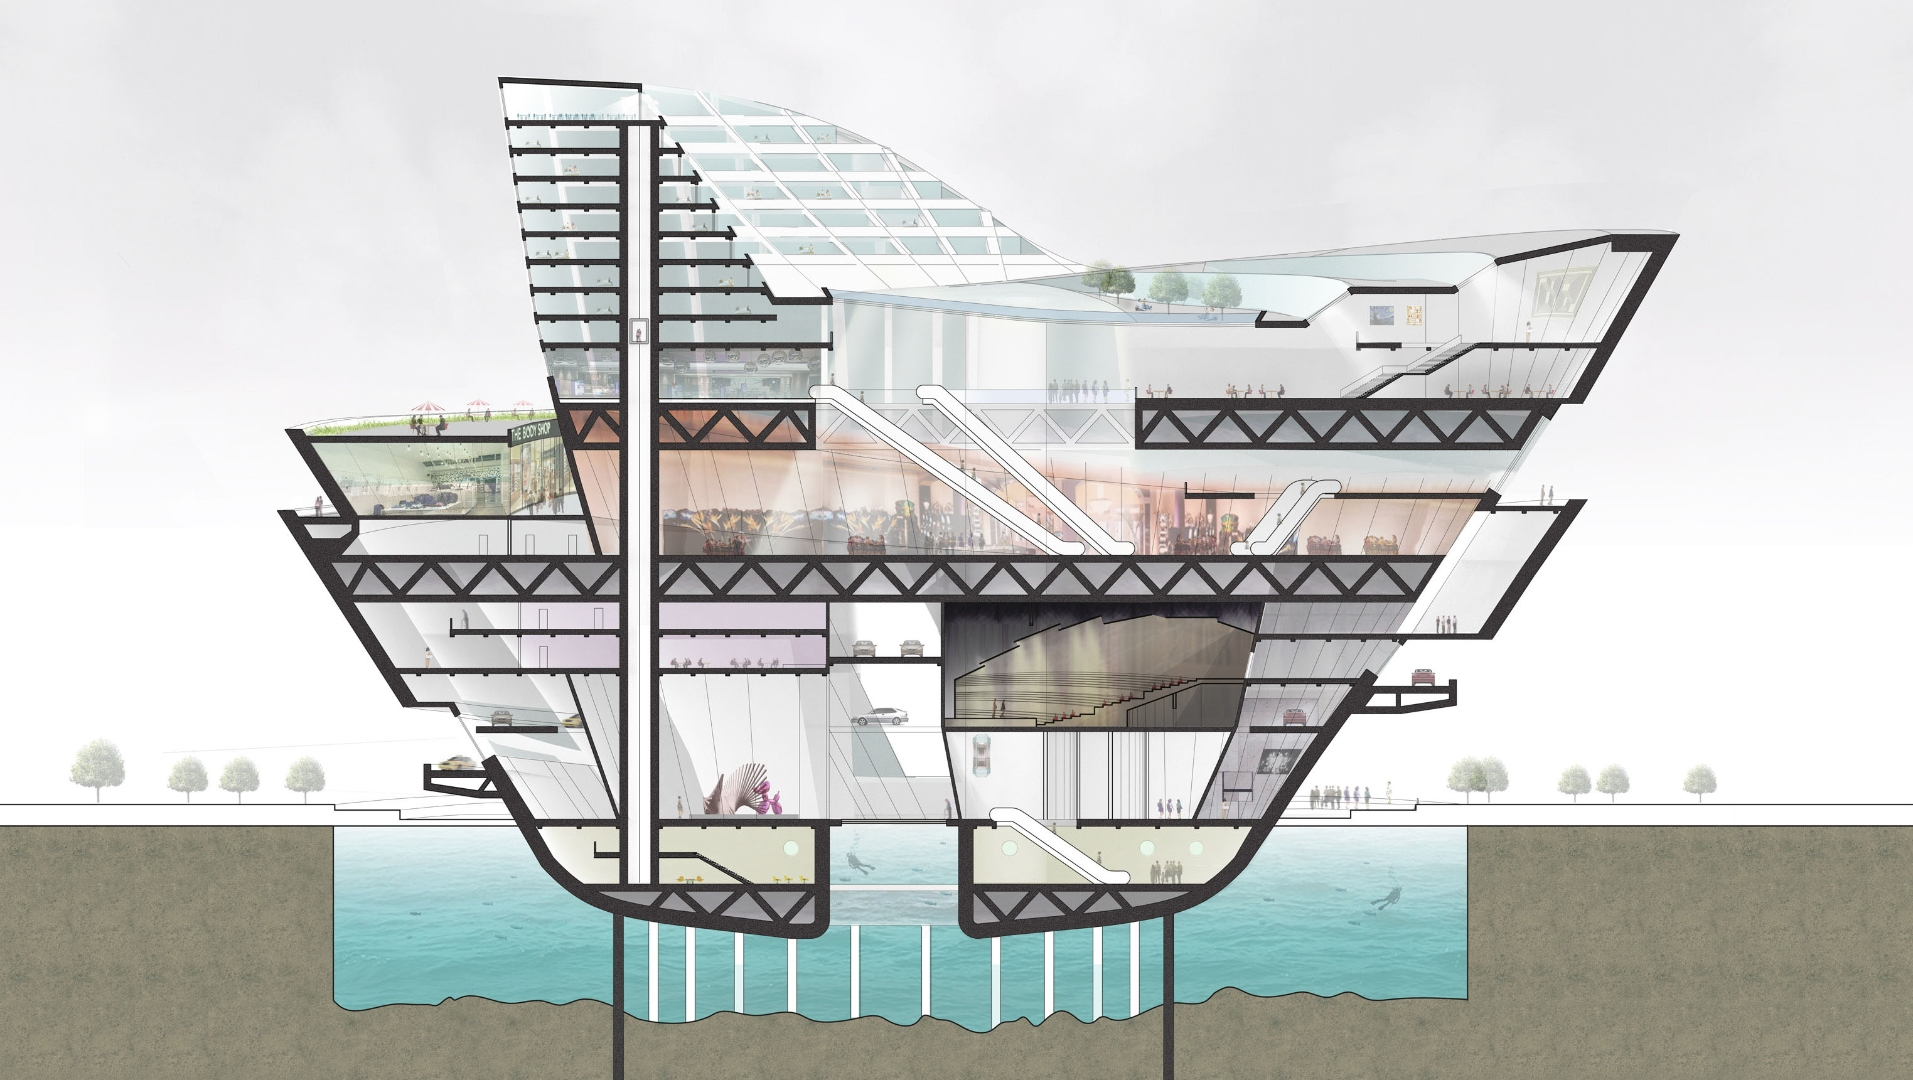 Enlarge Photo: The Possibility of an Island: Designing the New Macau Waterfront 13